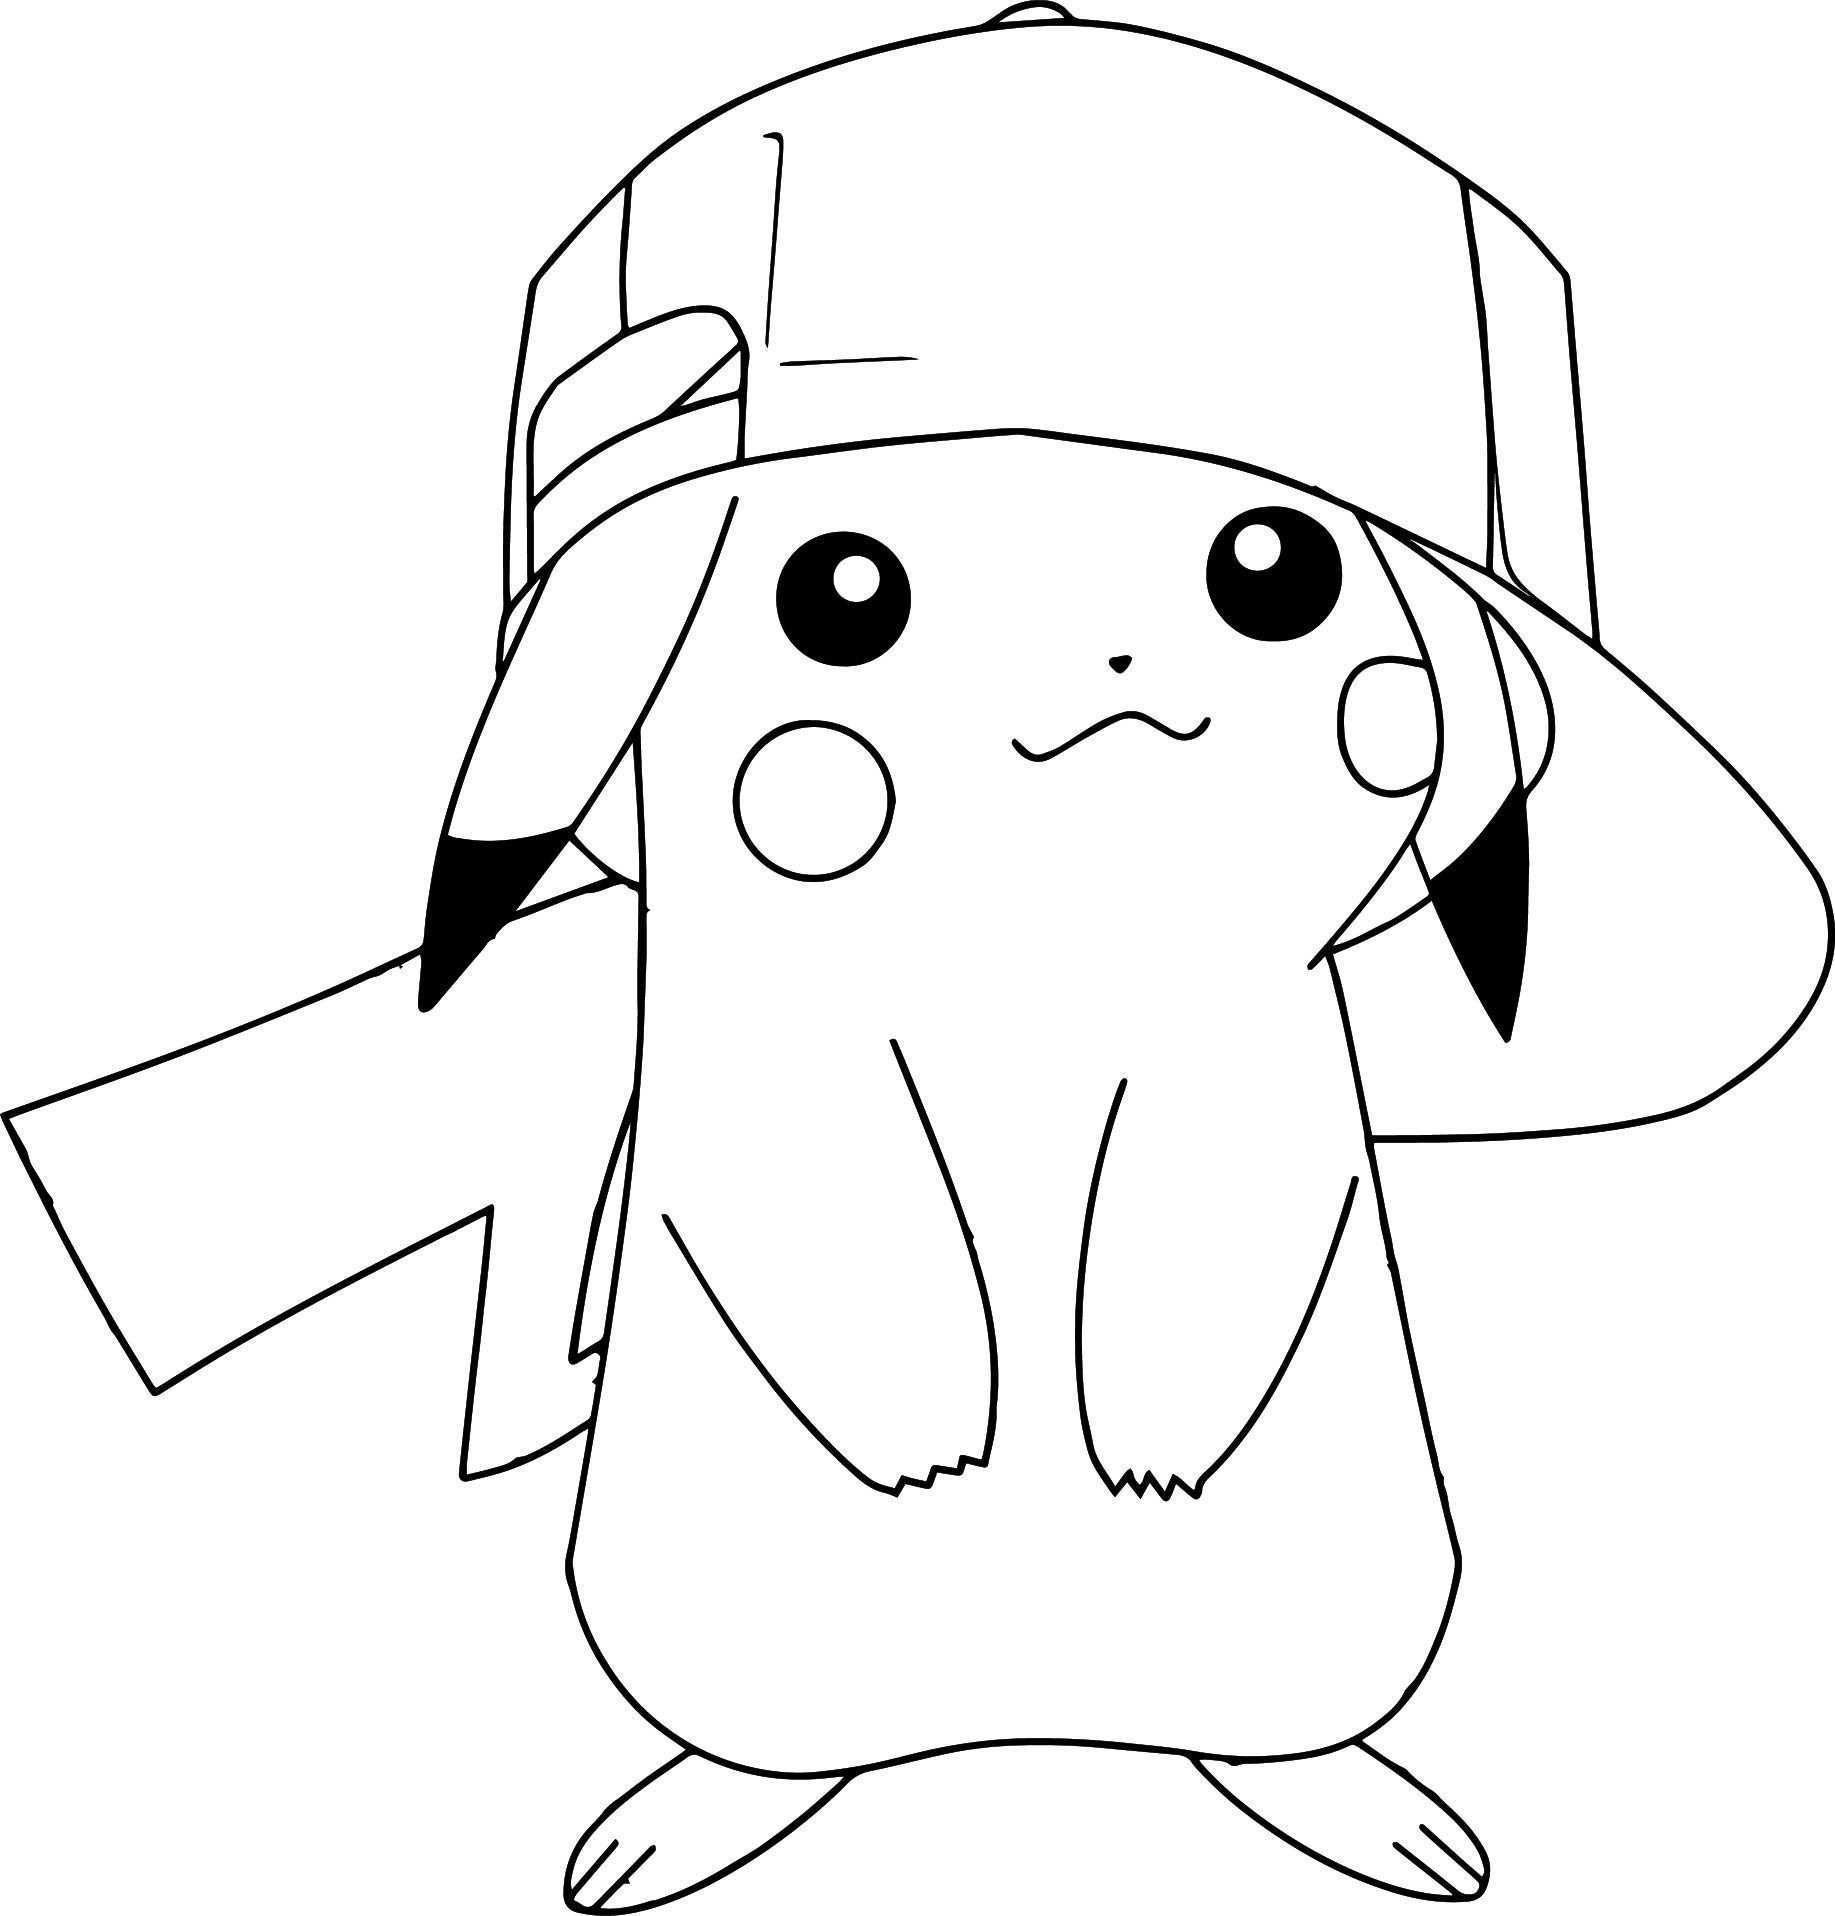 25 Brilliant Photo Of Pokemon Coloring Pages Eevee Davemelillo Com Pikachu Coloring Page Cartoon Coloring Pages Pokemon Coloring Sheets